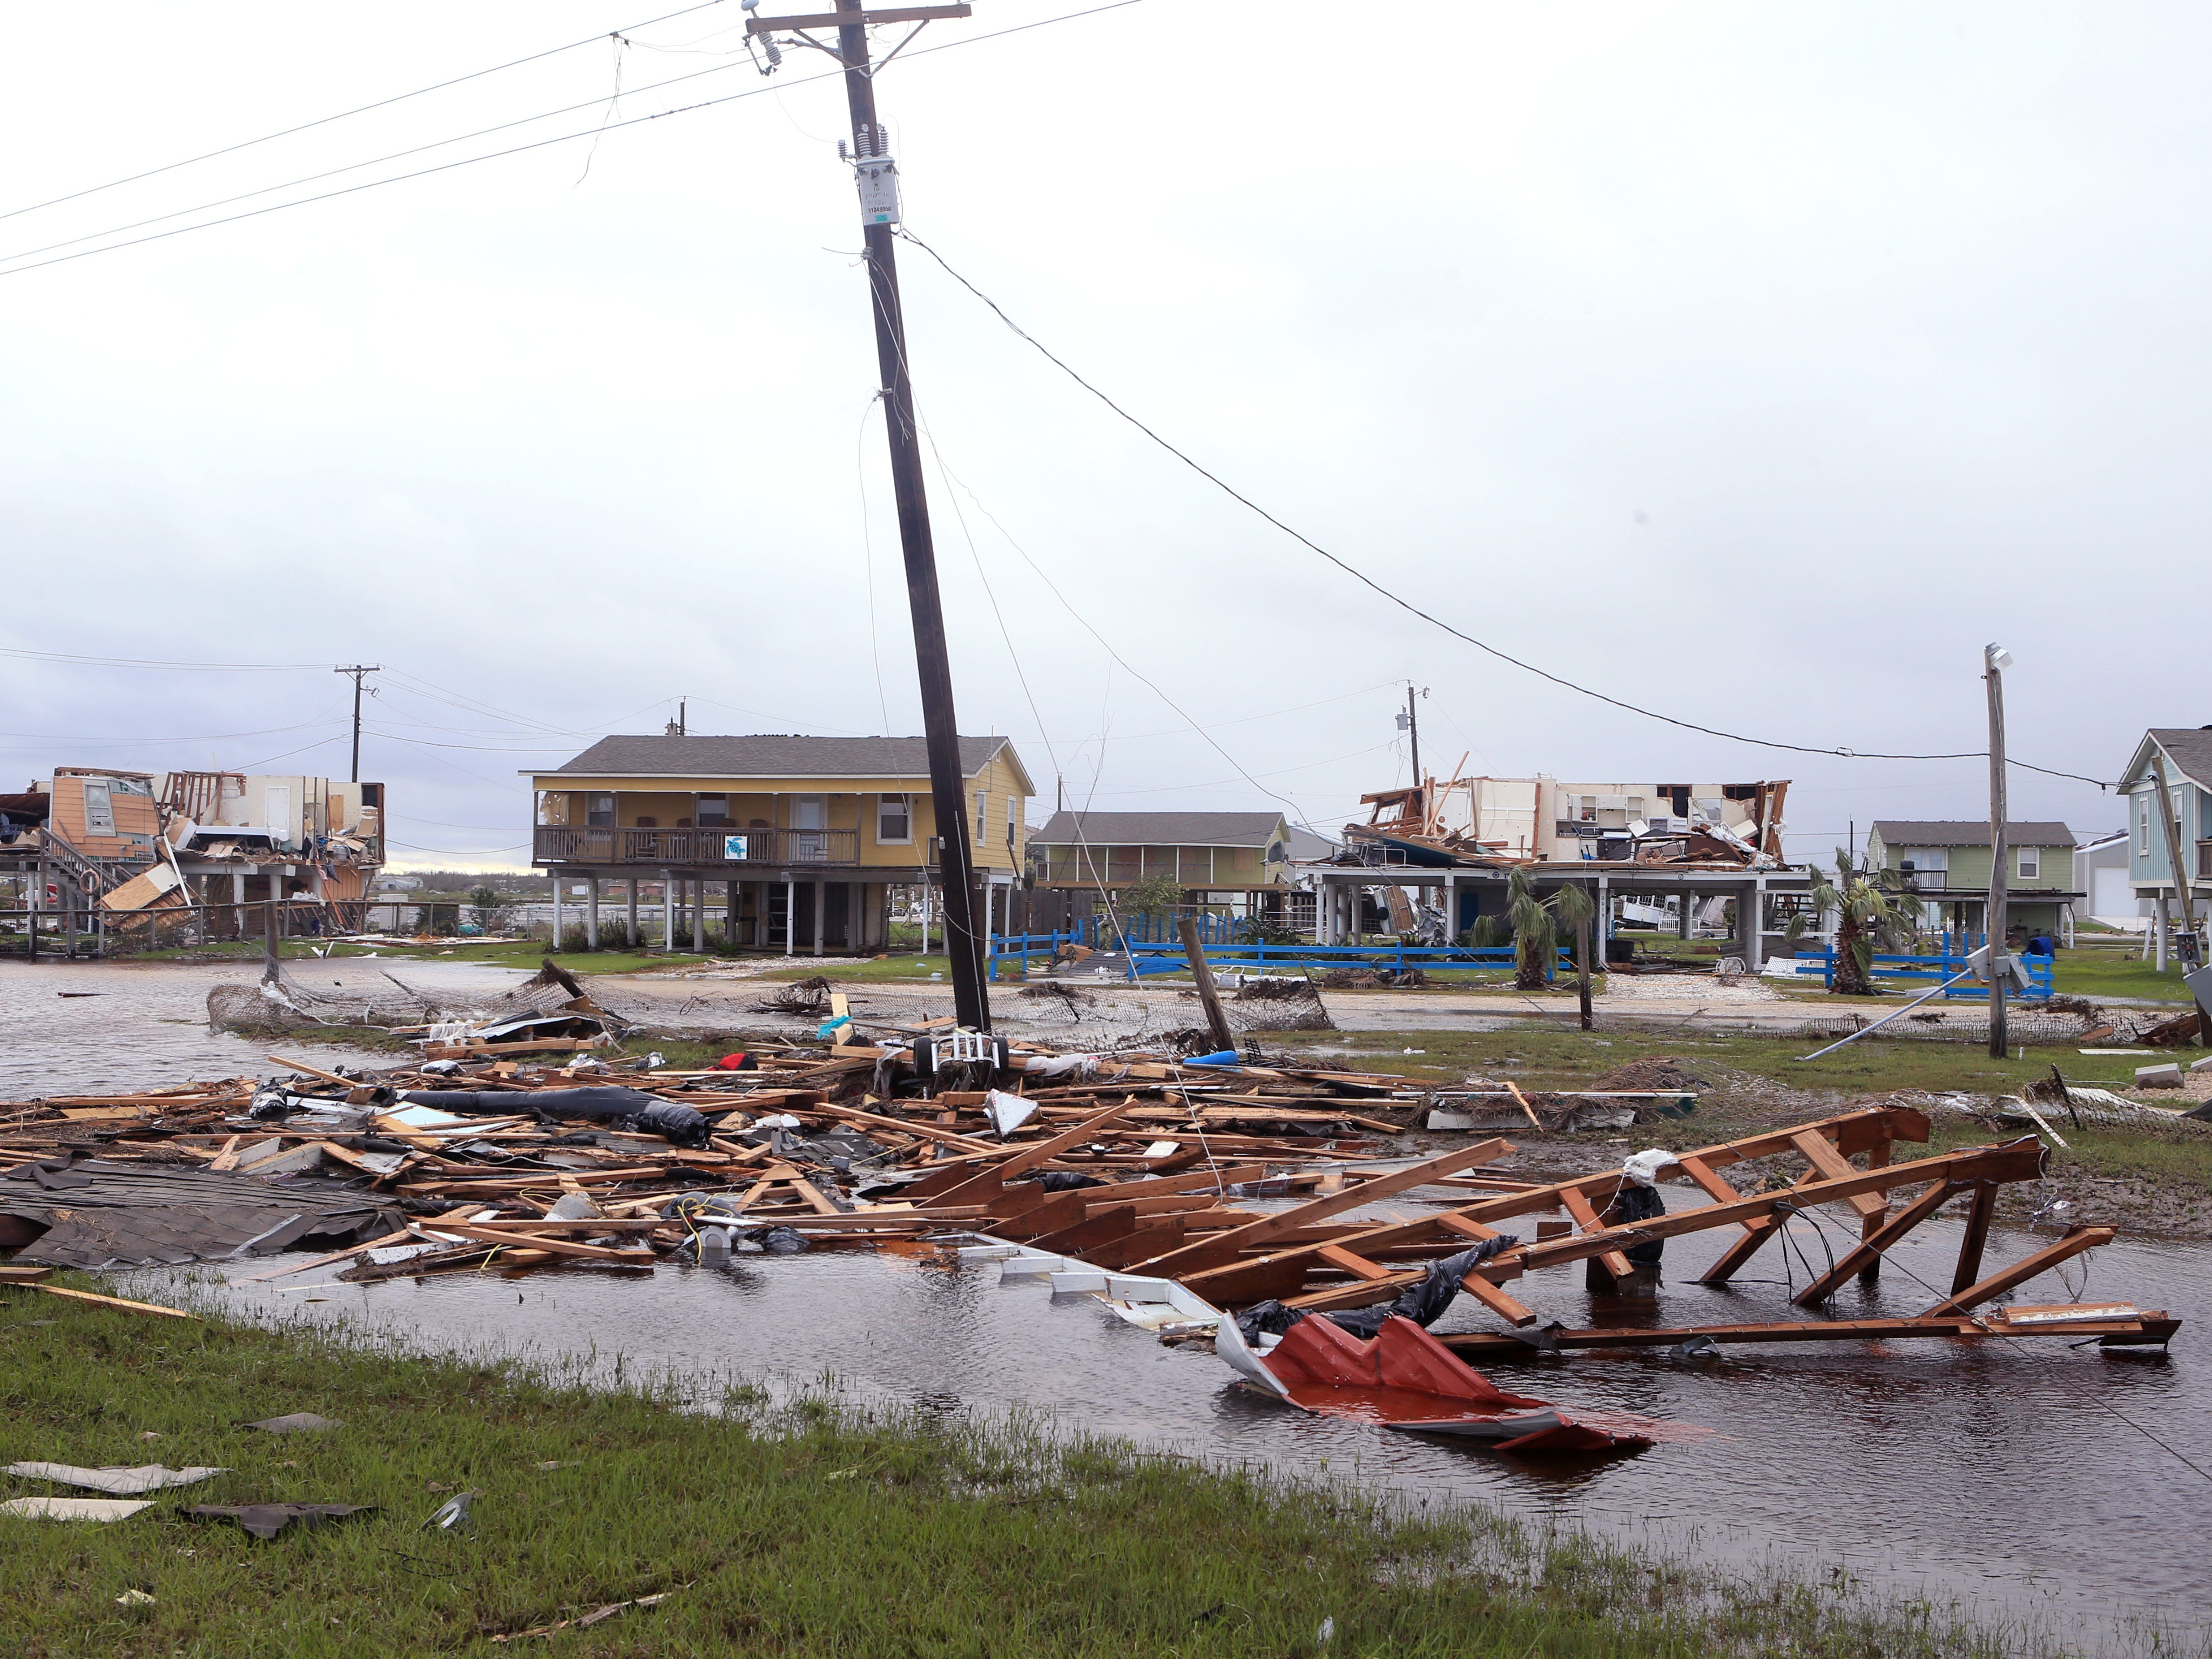 Homes and property in in Cove Harbor in Rockport, TX, sustained considerable damage from Hurricane Harvey. This was the scene of August 27, 2017. As the community continues to recover, there is still a lack of housing, which has a direct impact on the membership rolls of the churches.